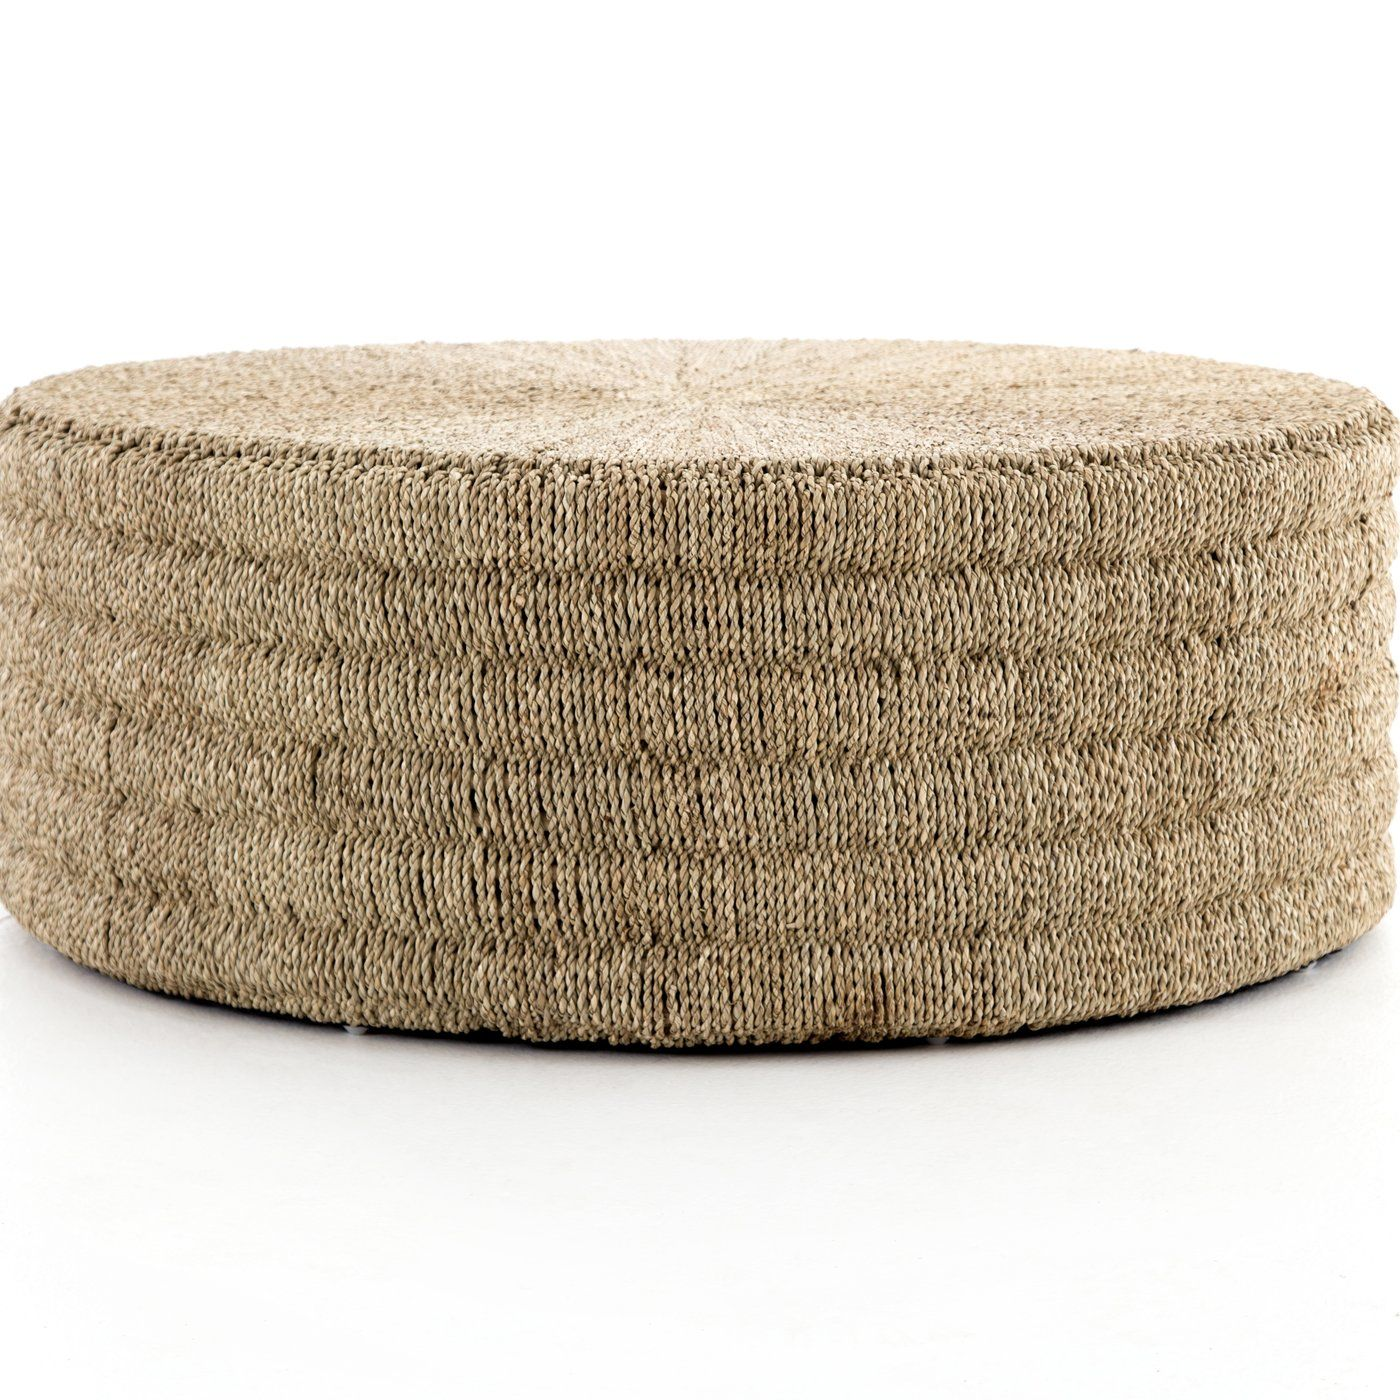 Pascal Woven Round Coffee Table Ottoman In 2020 Coffee Table Wood Round Coffee Table Reclaimed Wood Coffee Table [ 1000 x 1000 Pixel ]